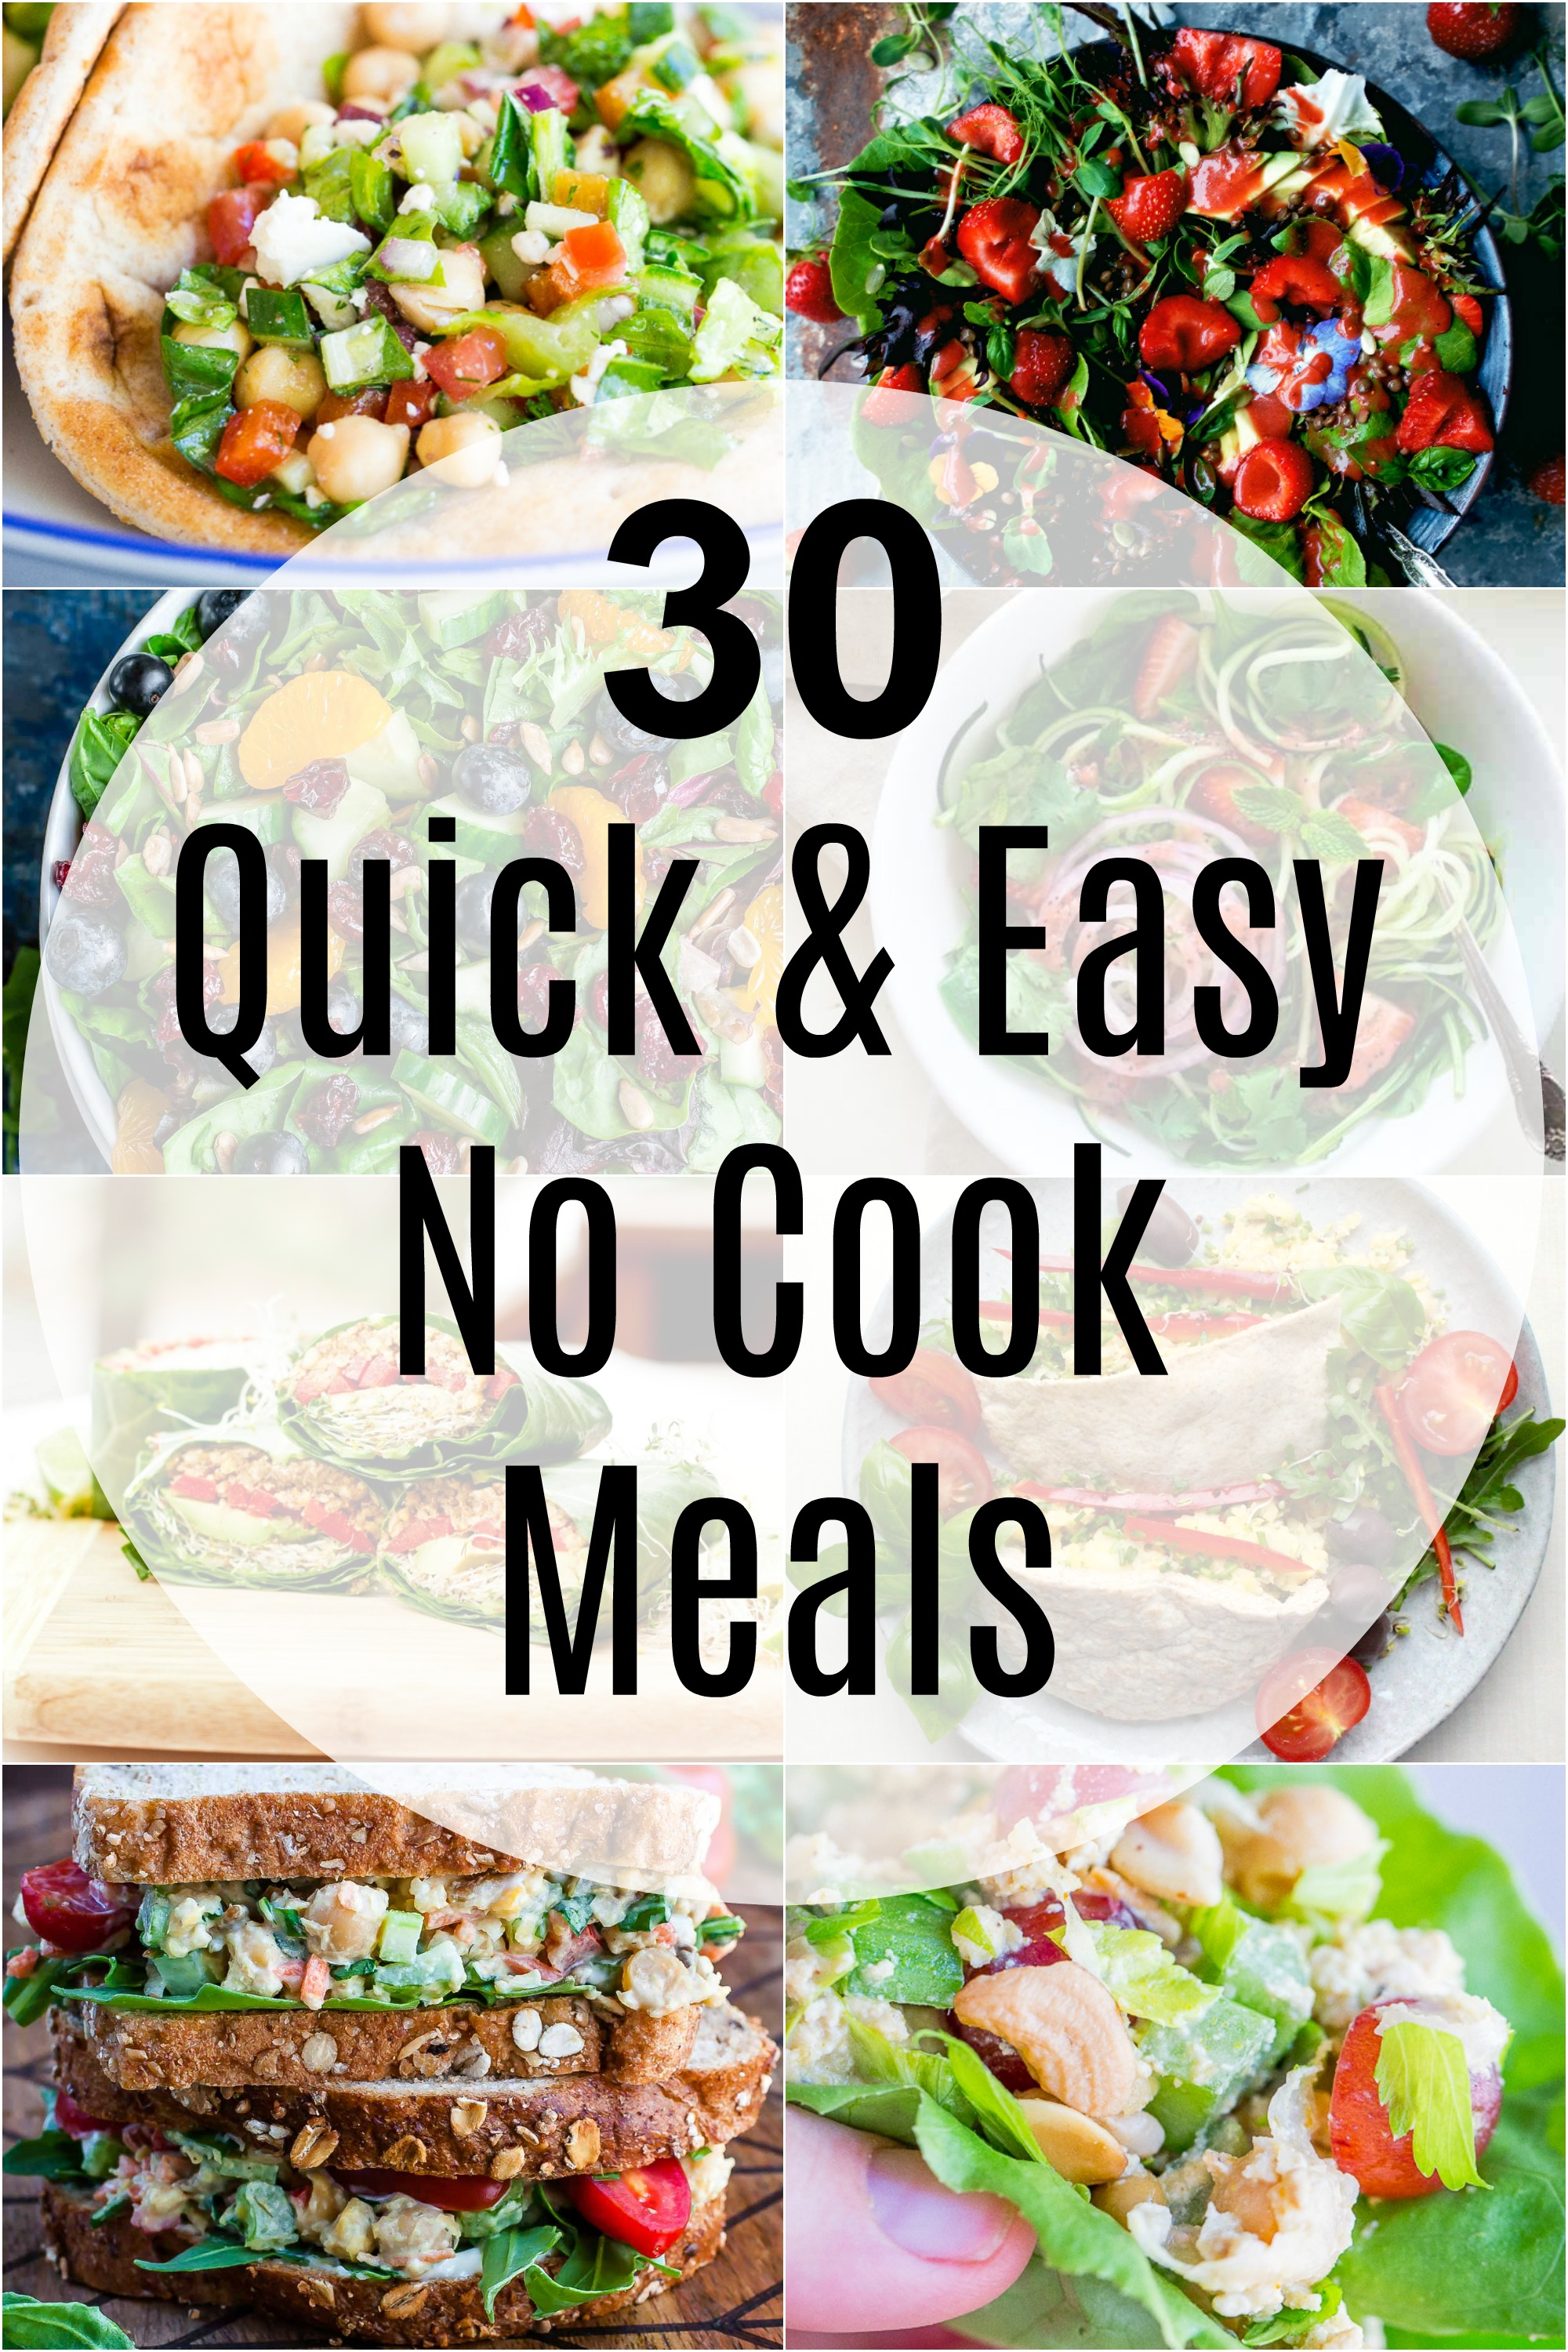 30 Minuten Küche Easy Cooking 30 Quick And Easy No Cook Meals She Likes Food